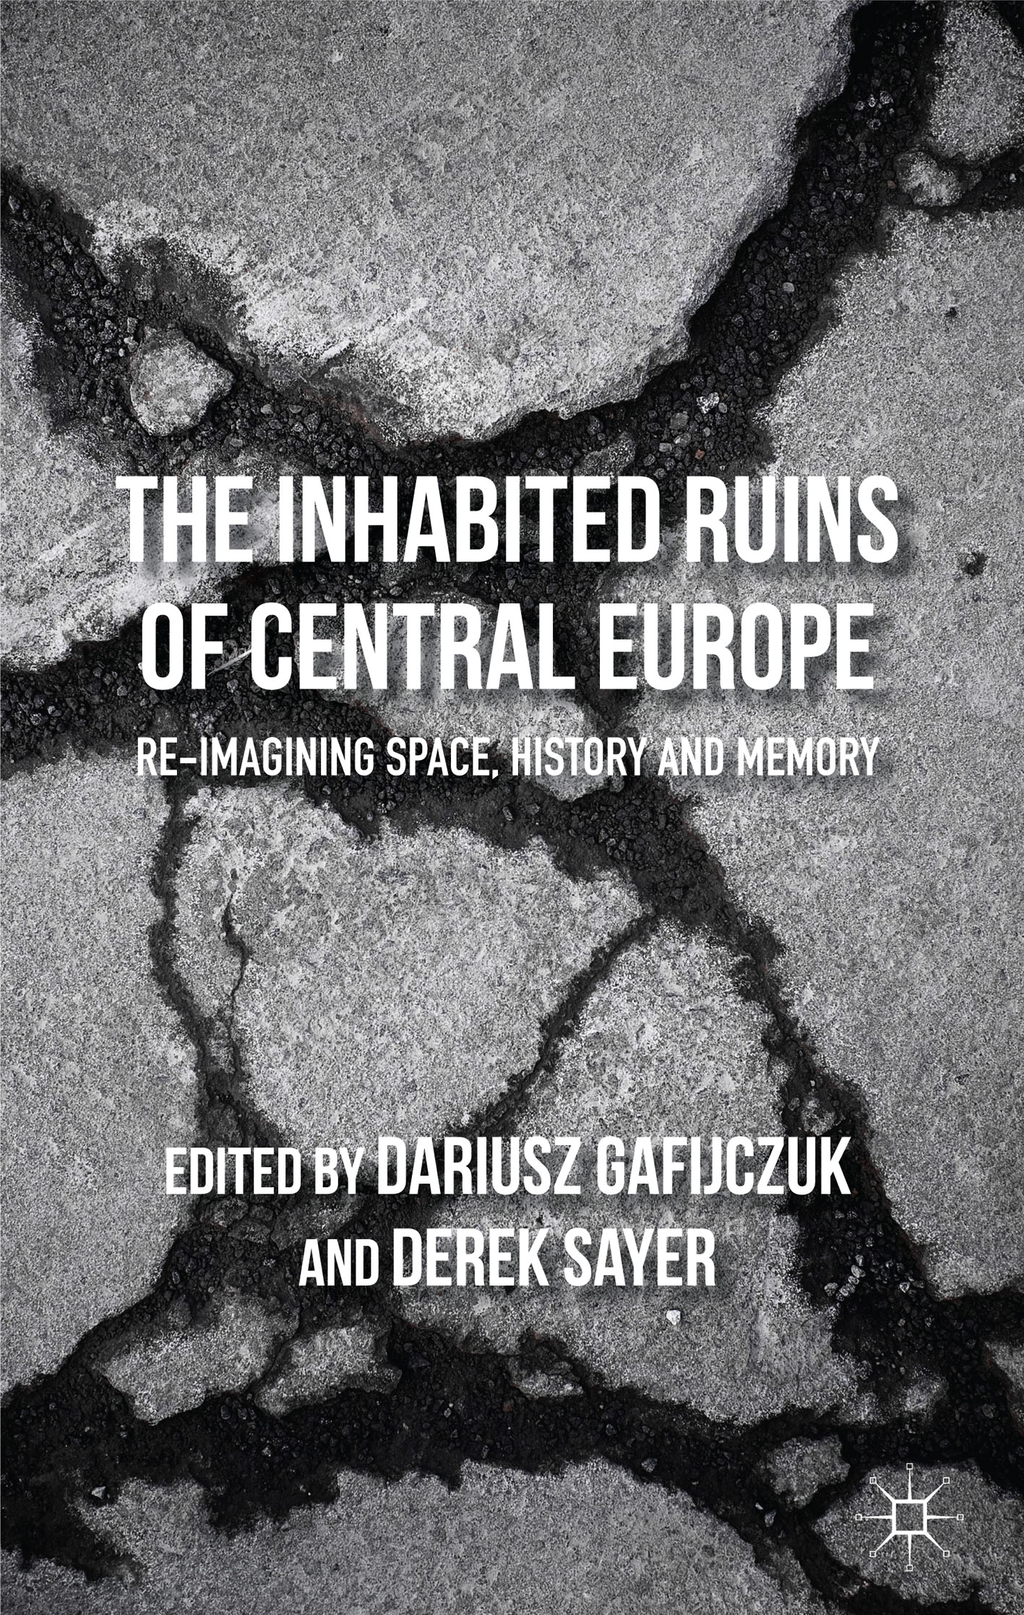 The Inhabited Ruins of Central Europe Re-imagining Space,  History,  and Memory